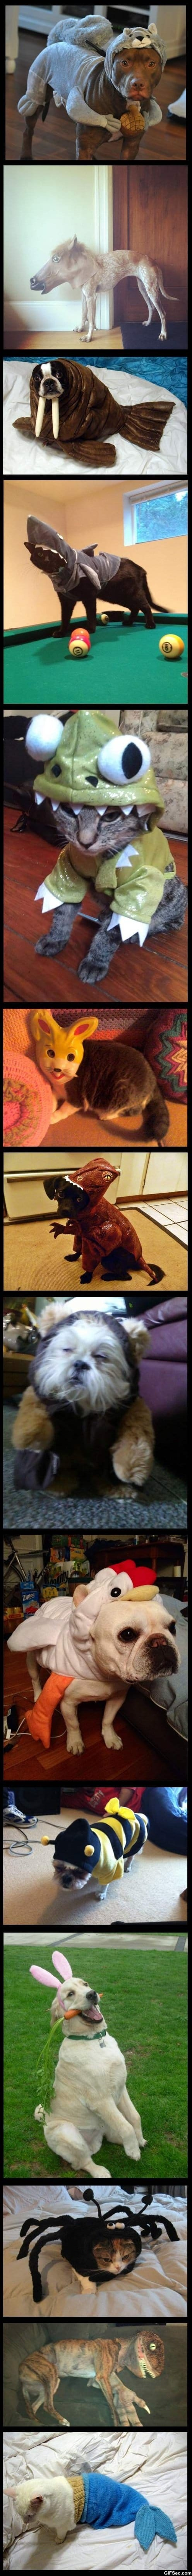 LOL - Animals dressed as other animals